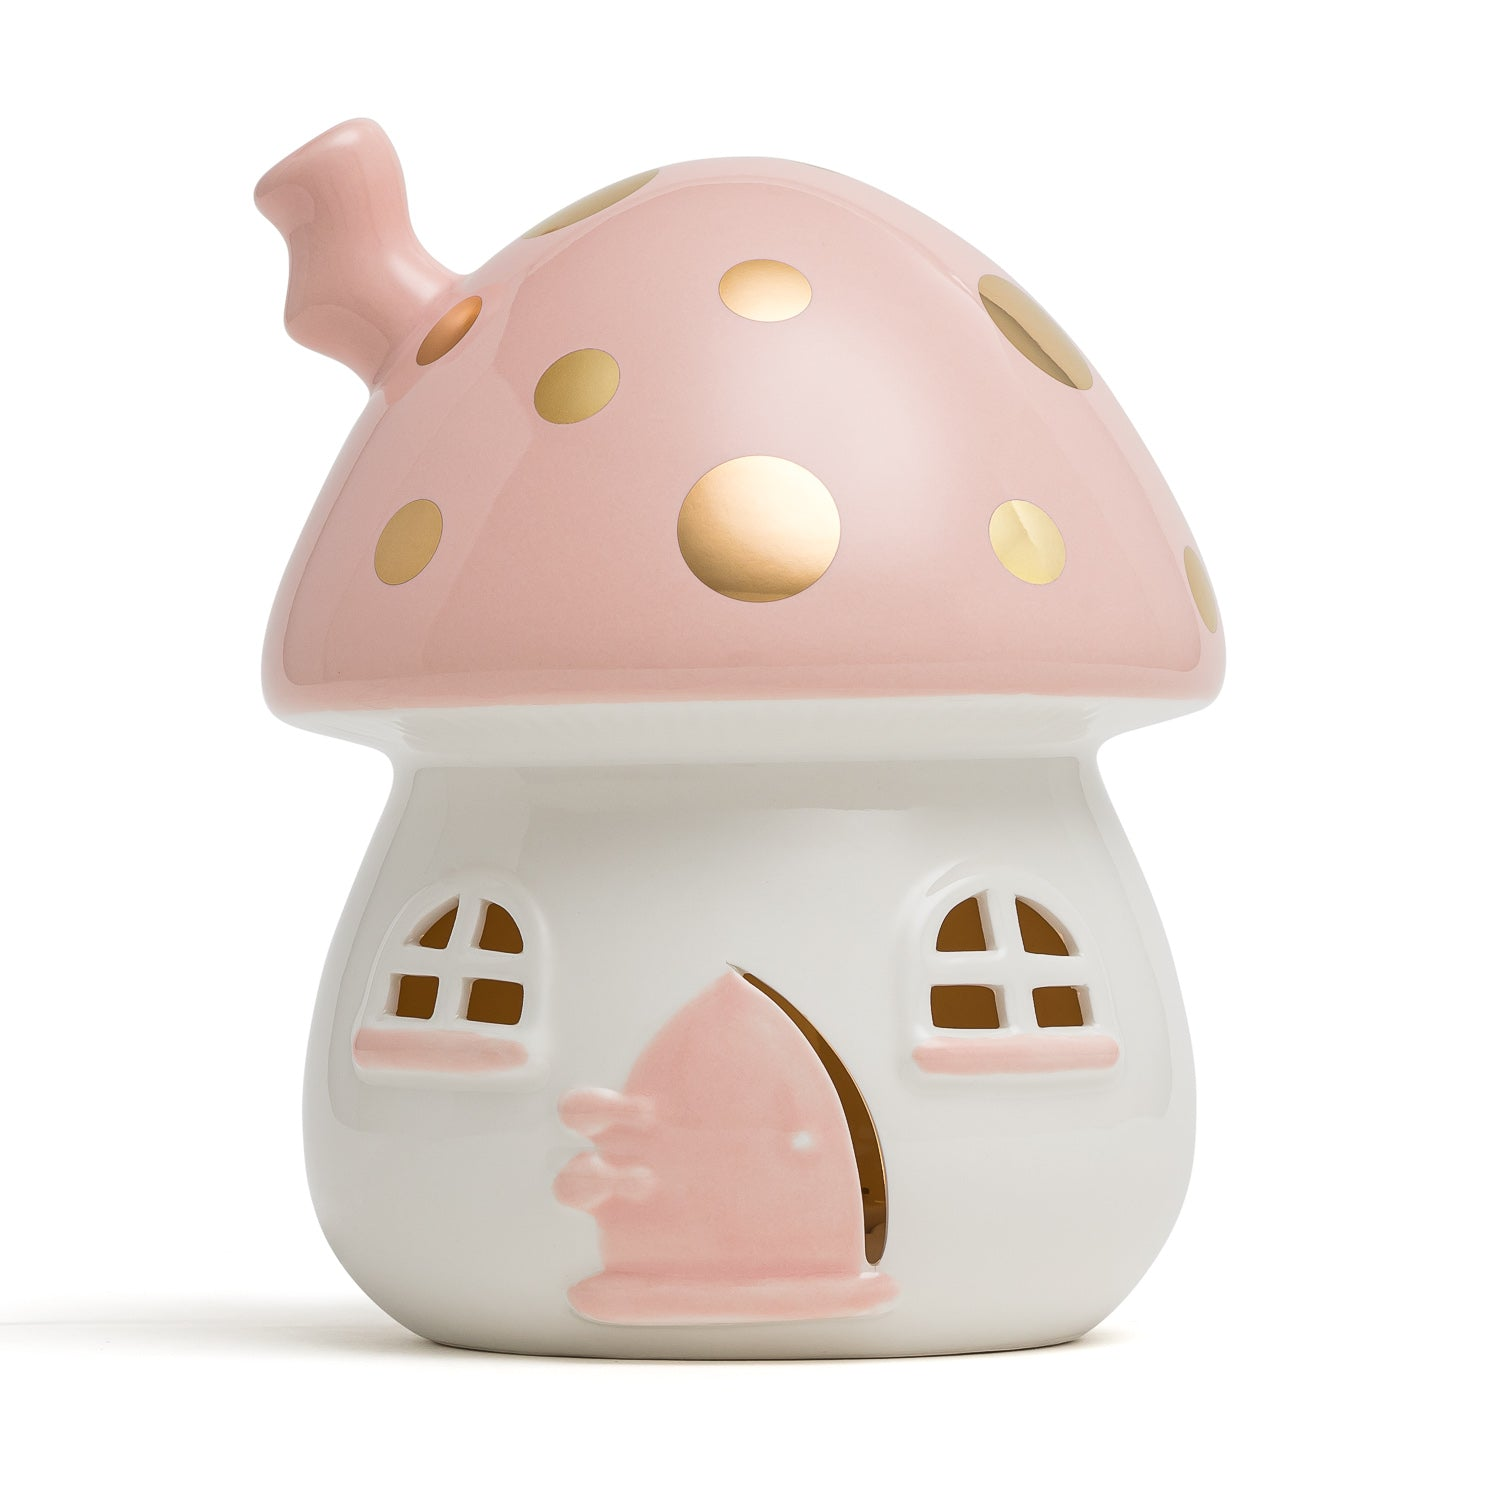 Little Belle Fairy House Nightlight - Pink & Gold [Plug-in]